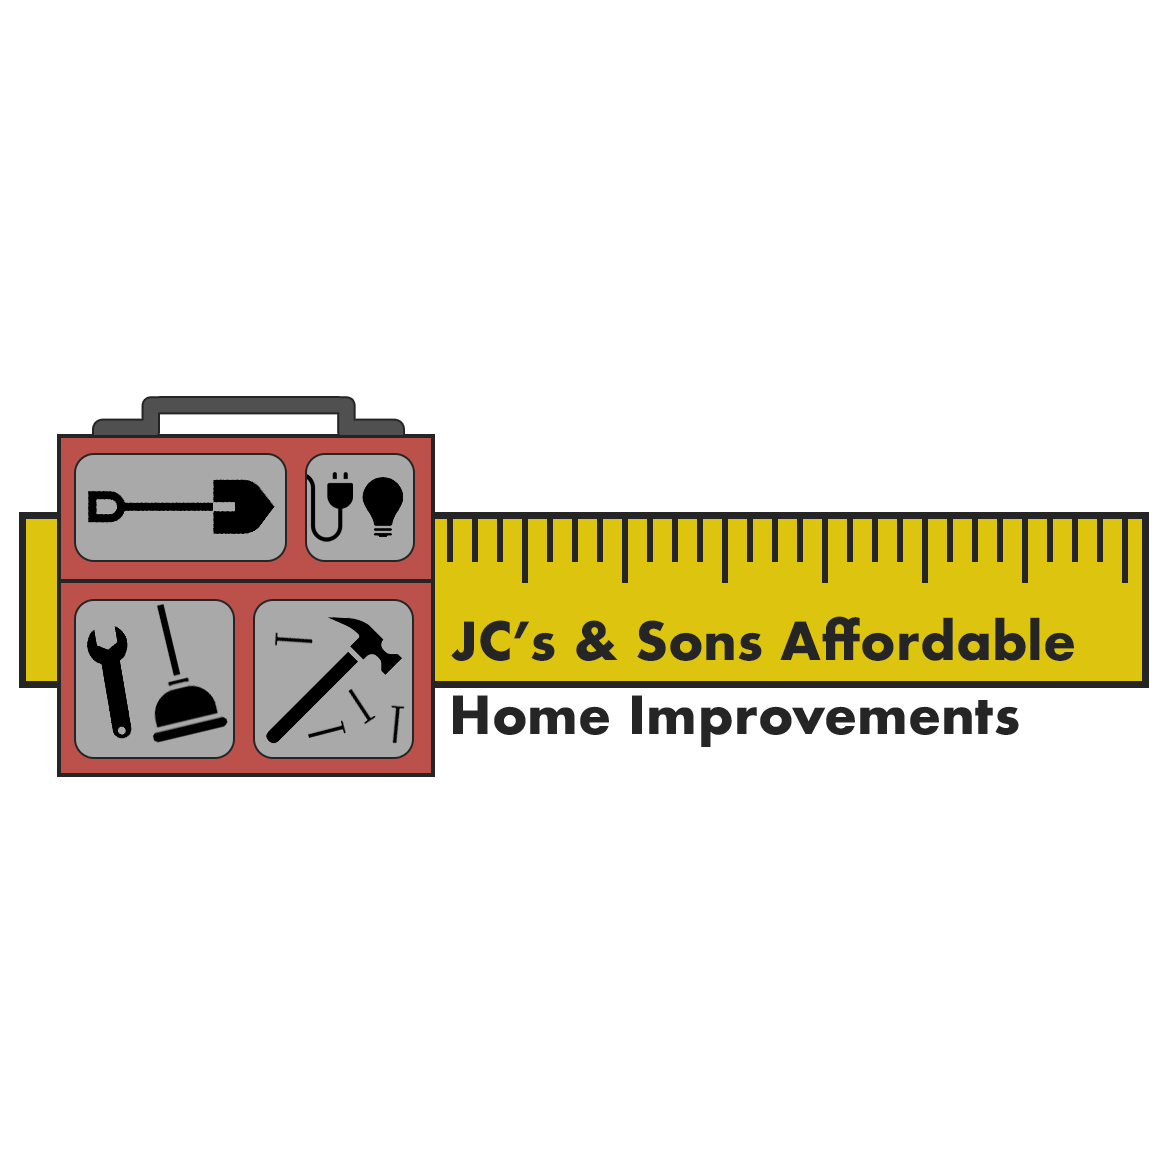 Jc S And Sons Affordable Home Improvement In Zanesville Oh 43701 740 408 6000 Chamberofcommerce Com